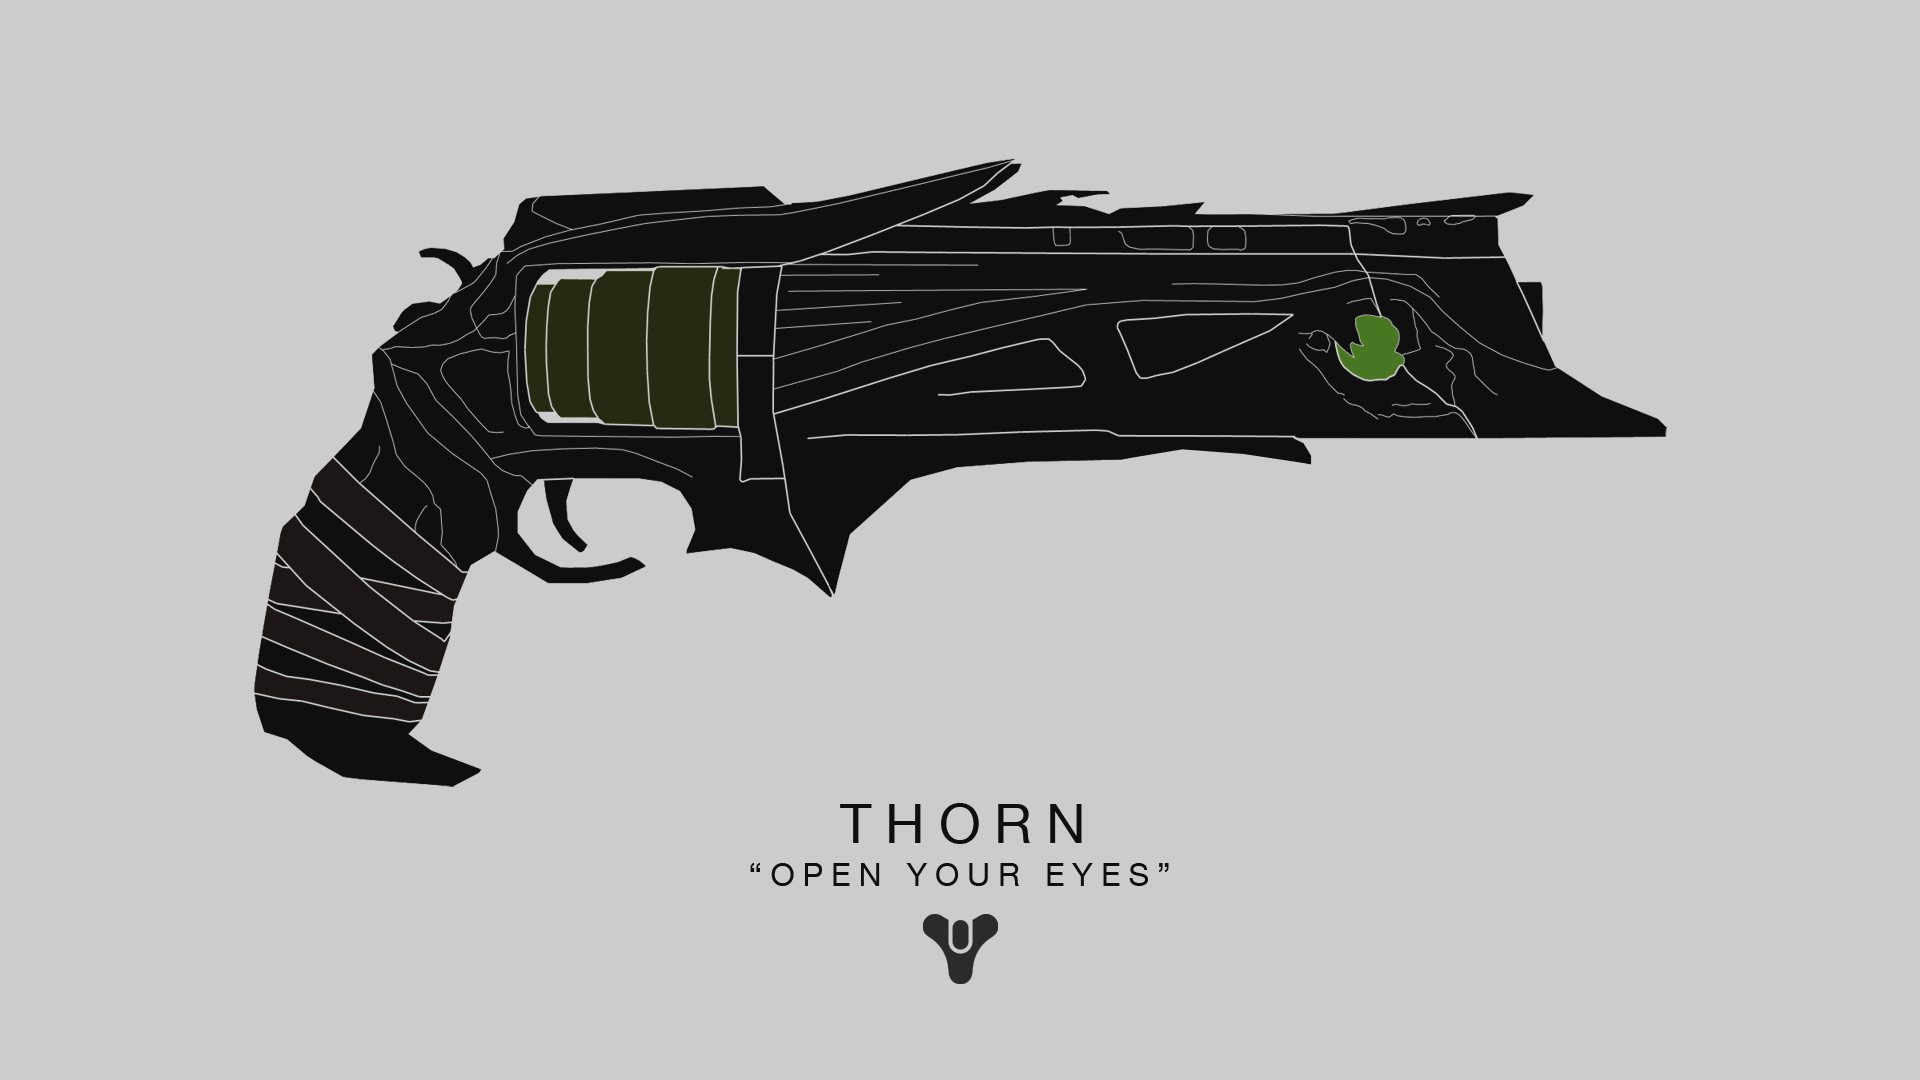 Free download Destiny Thorn by MorningWar [1920x1080] for